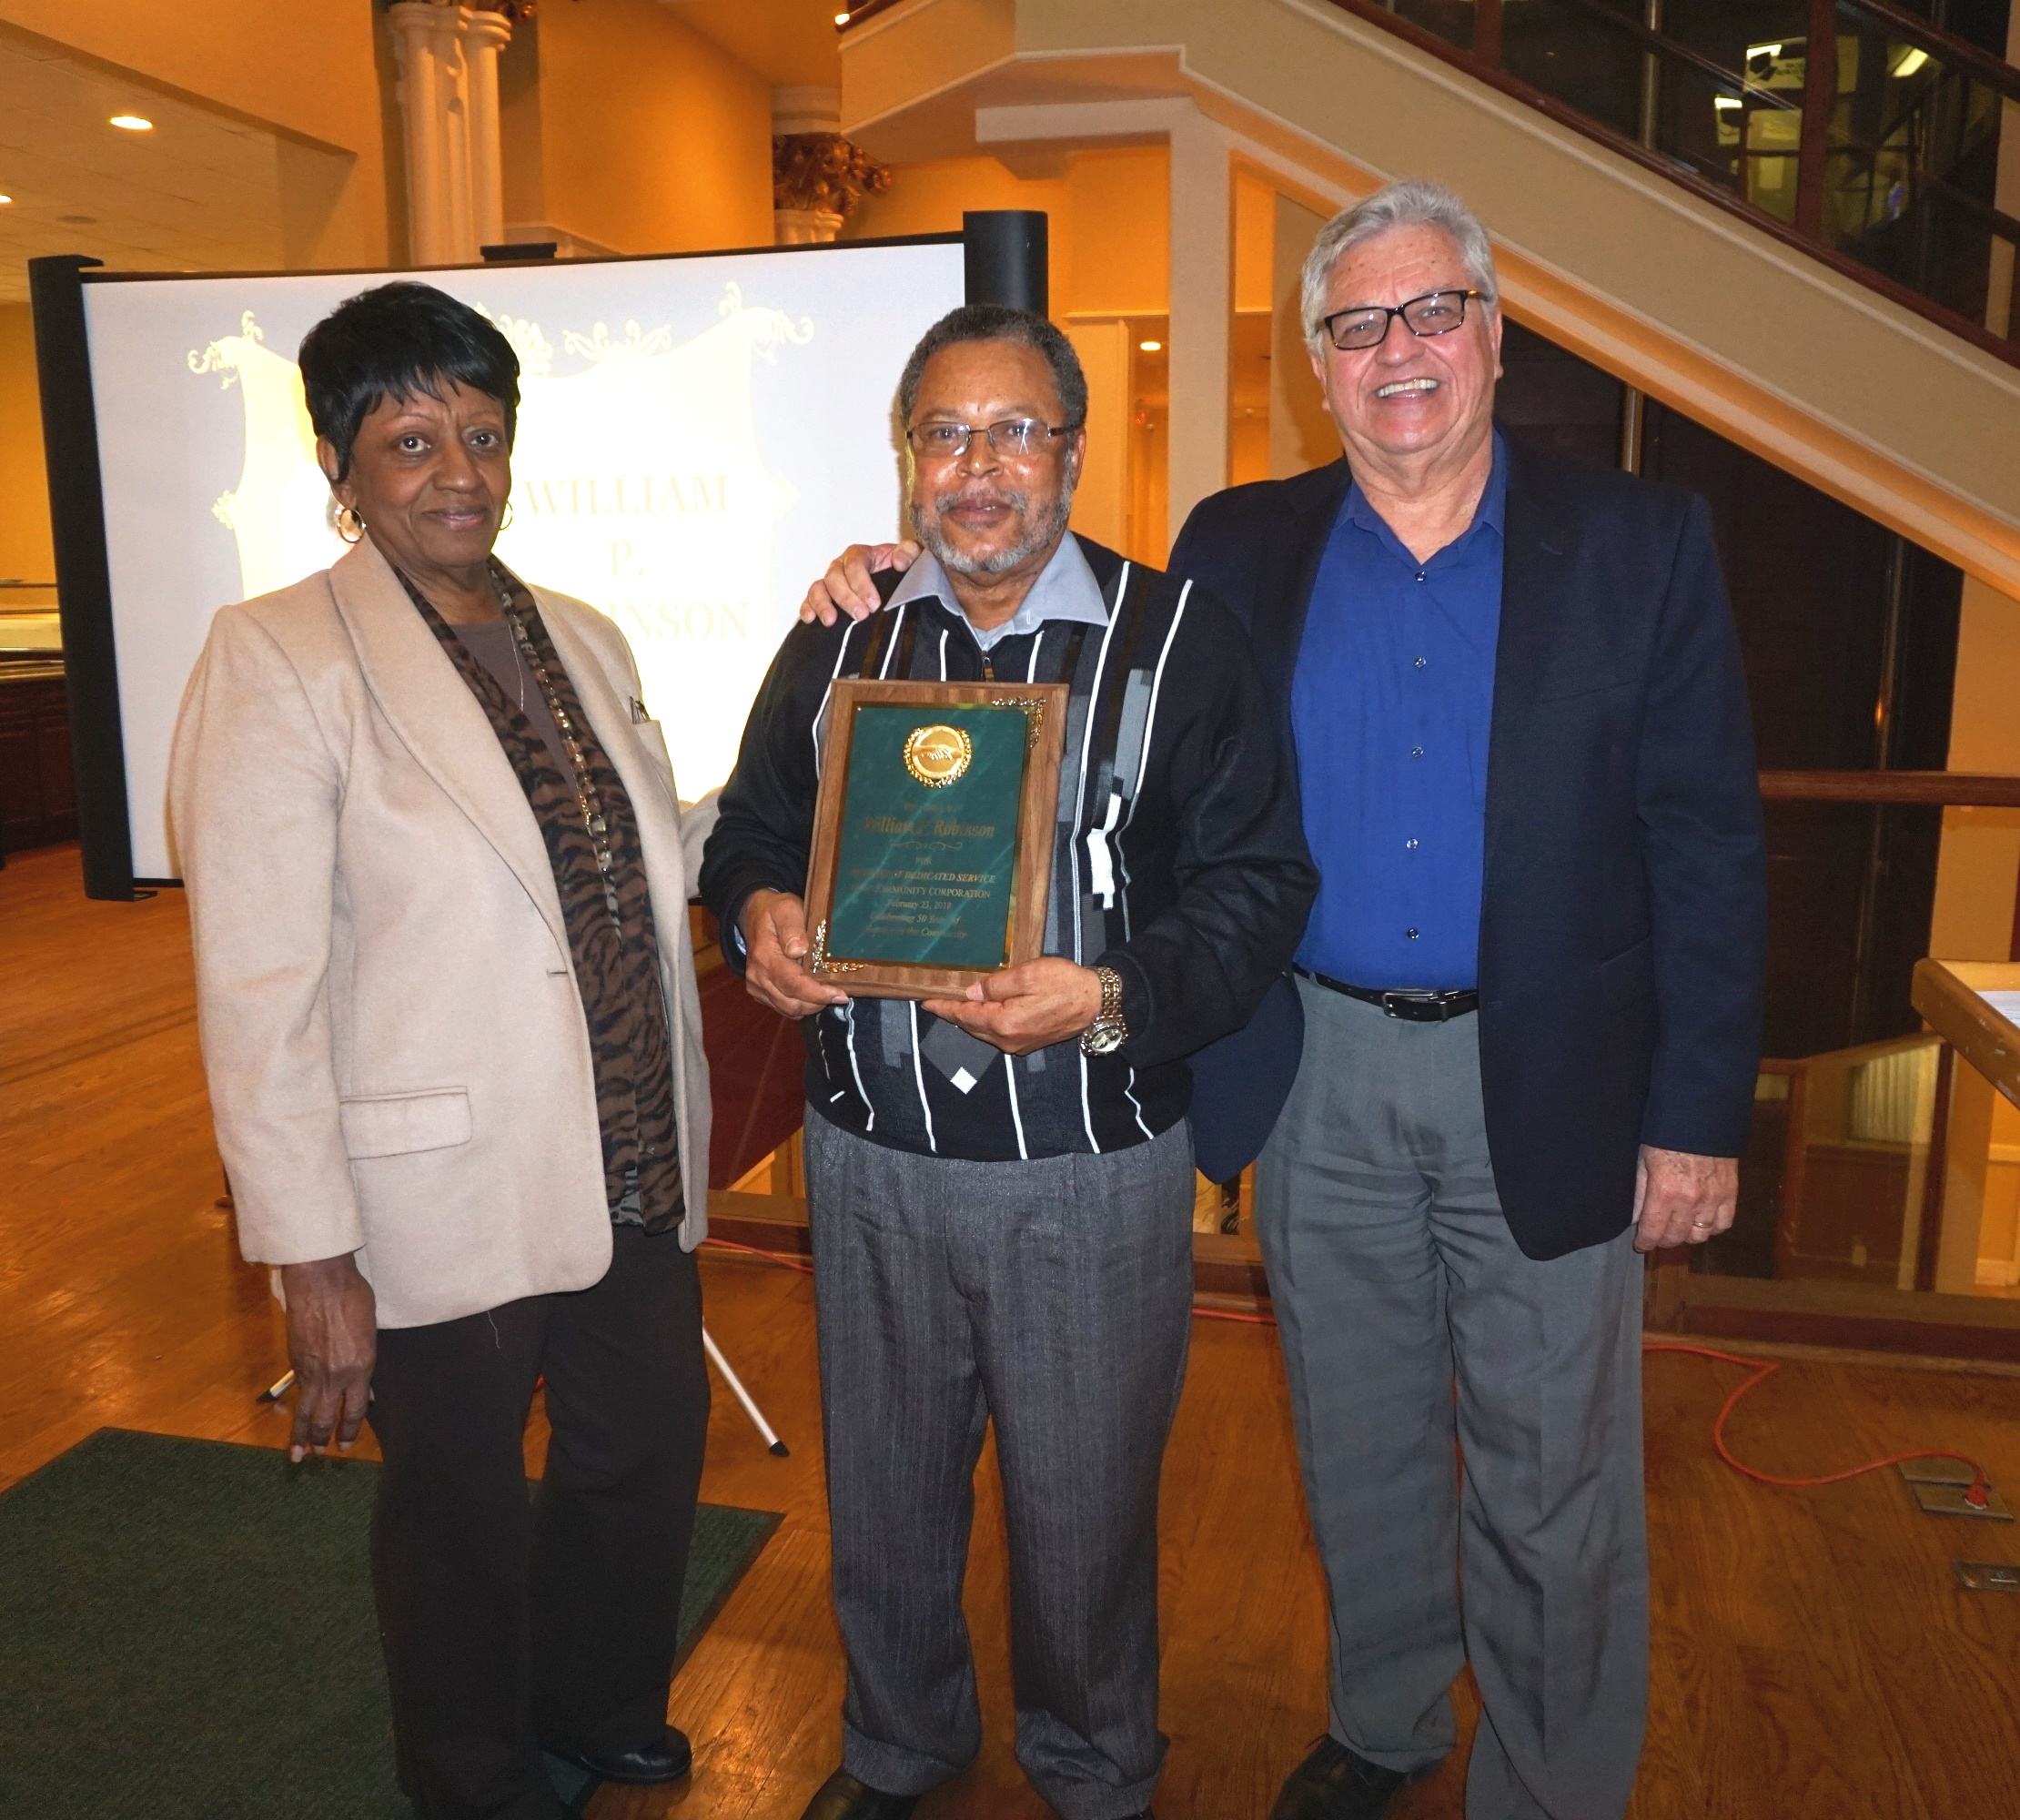 Employees Recognized For Commitment To New Community